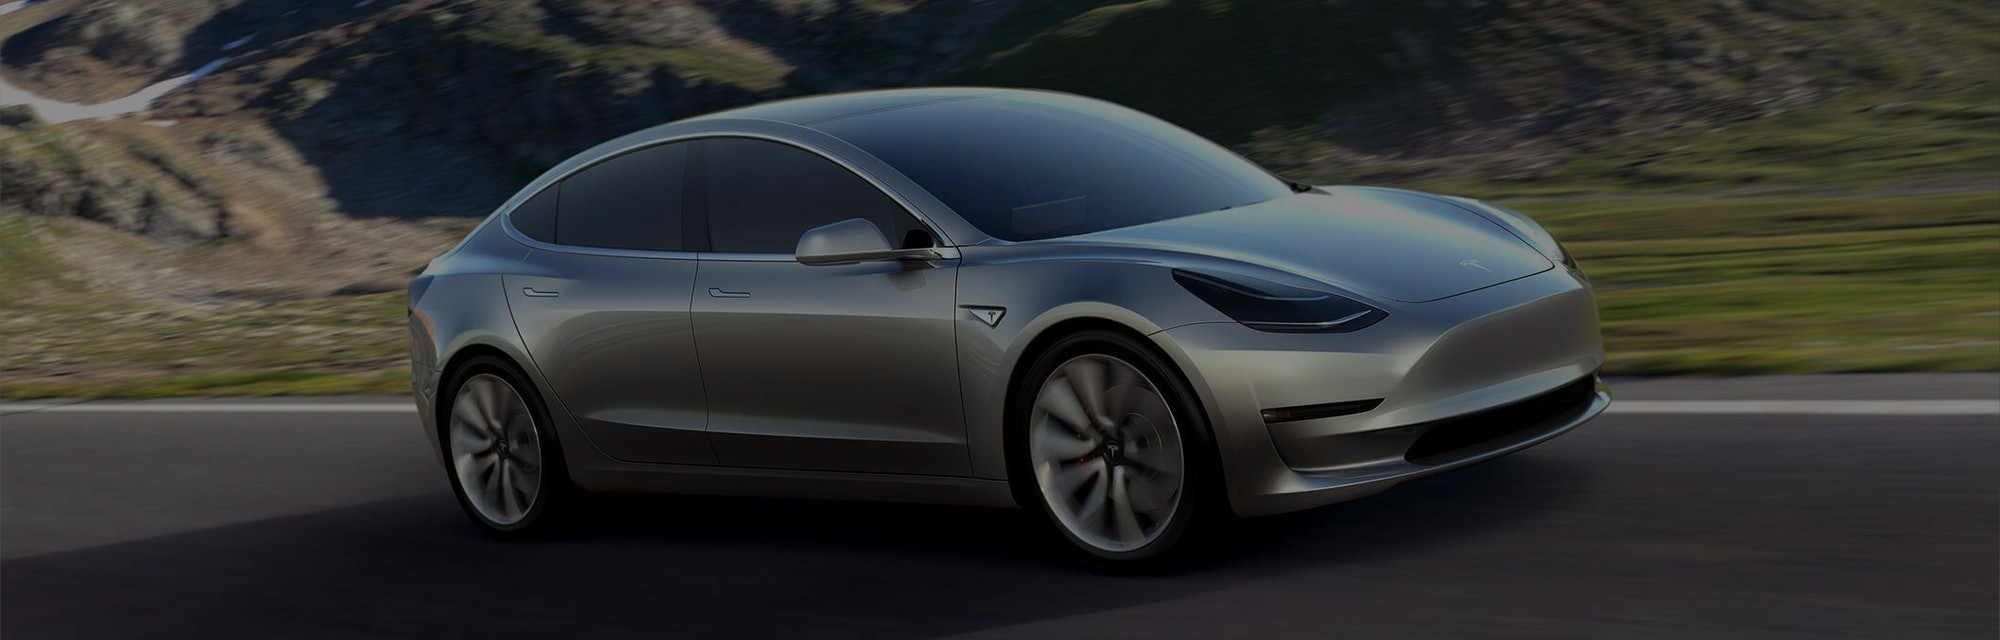 How Much Would a 'Real' Tesla Model 3 Cost?